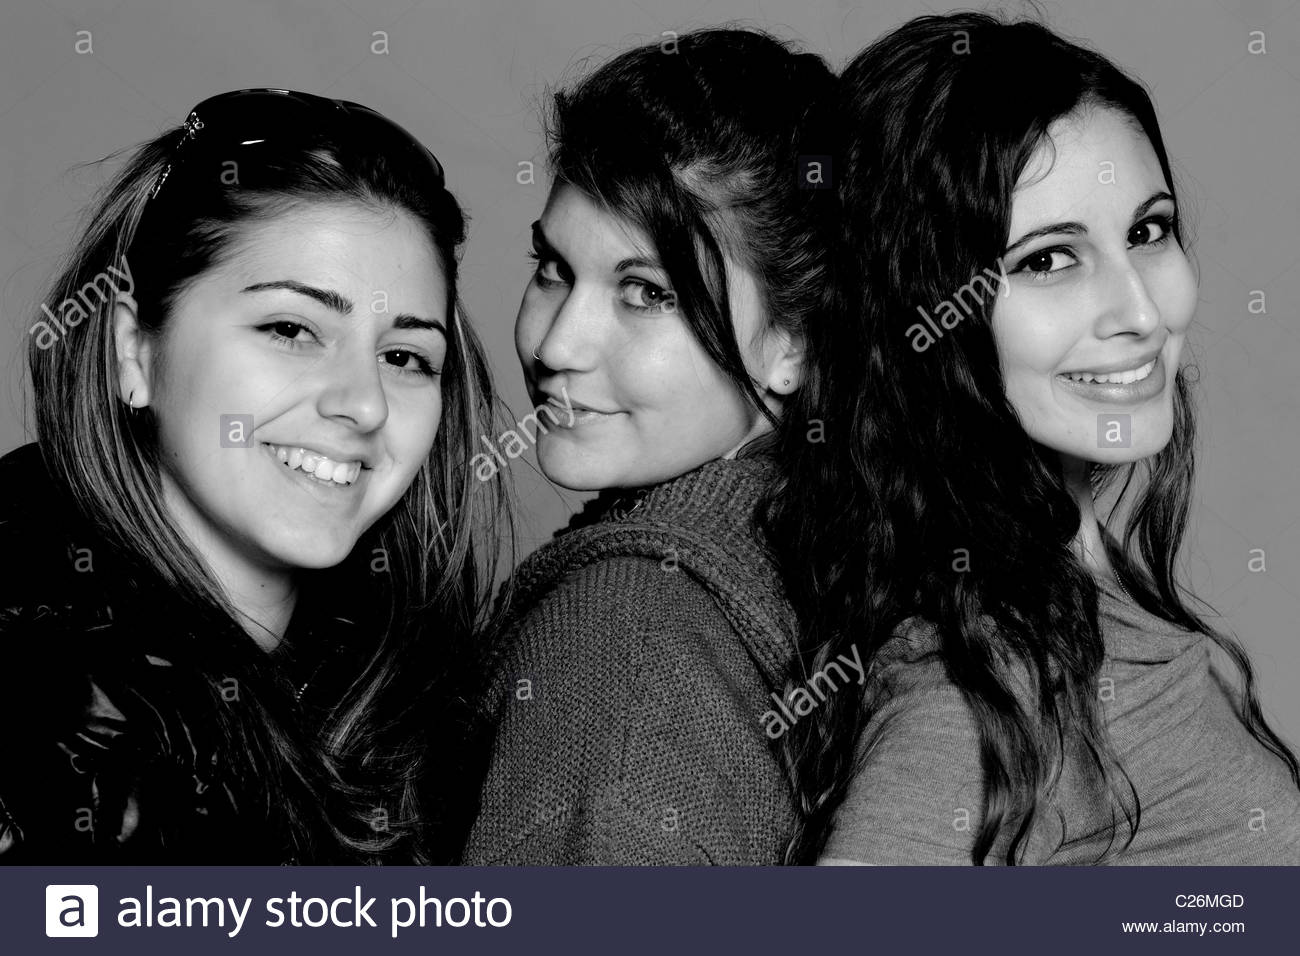 Young women friends 3 three people - Stock Image